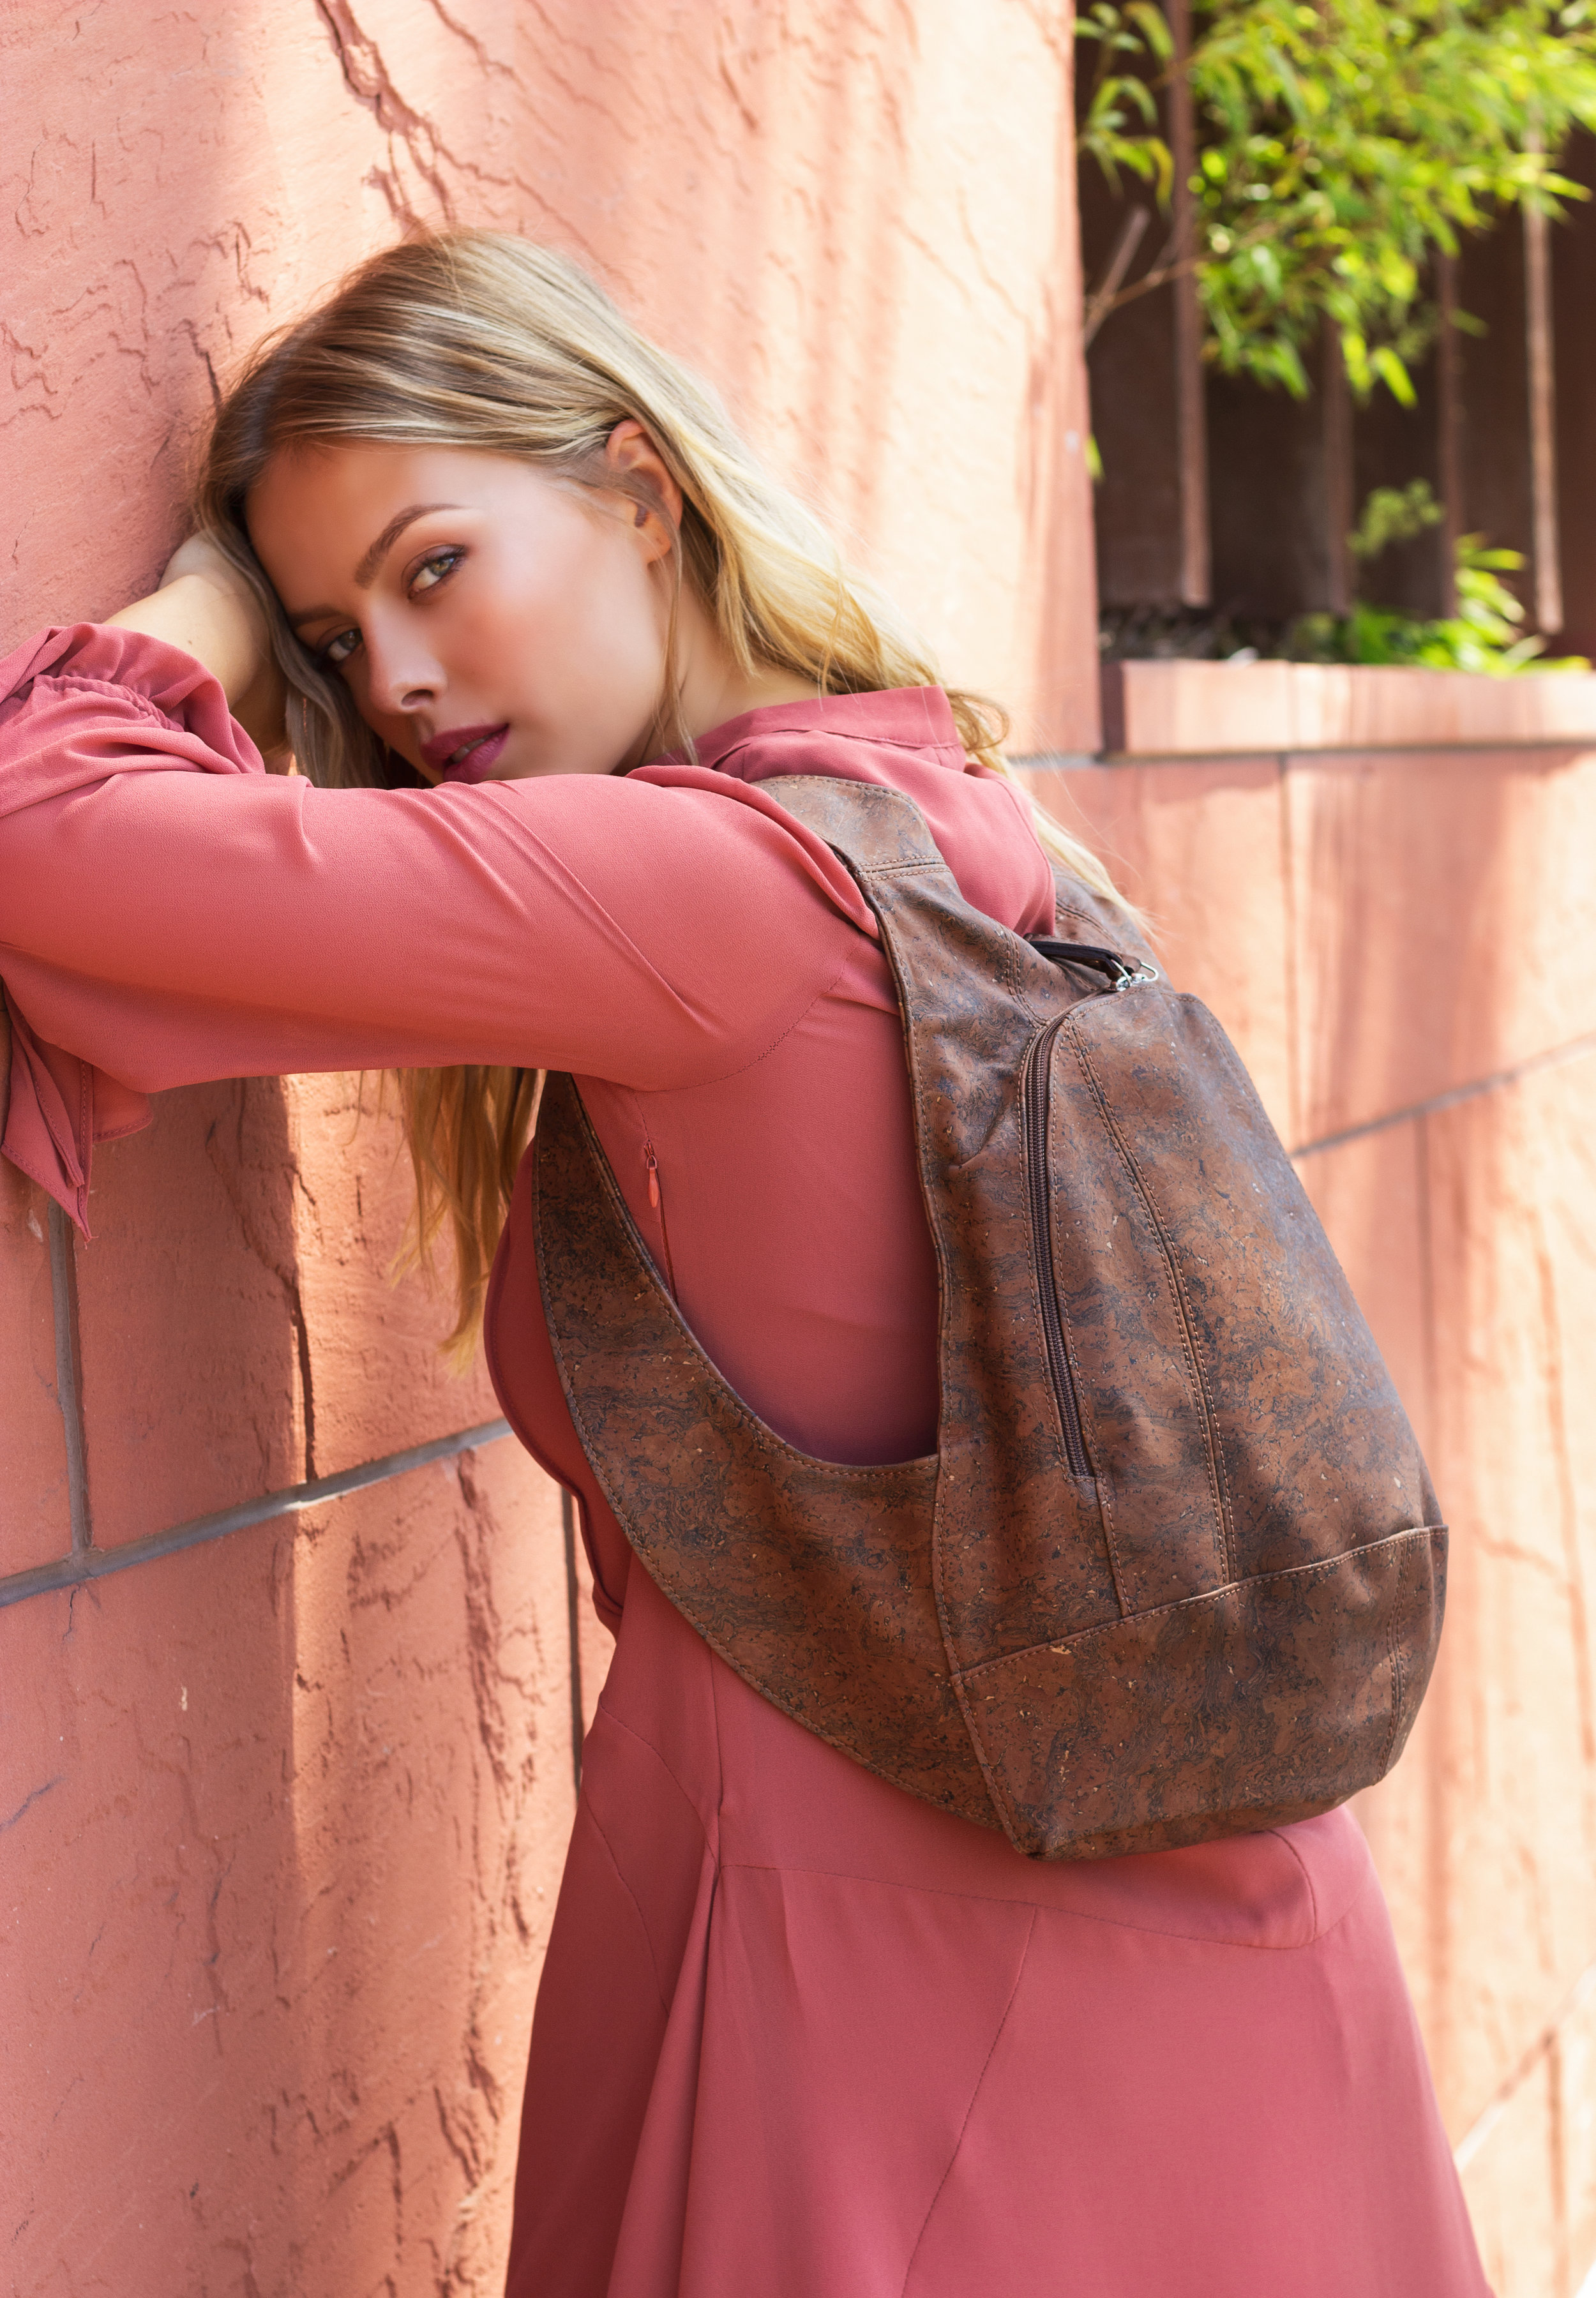 ARSAYO   This family designed the first VEGAN secured city backpack made out of cork!  These backpack are 100% ethical and made in Portugal.